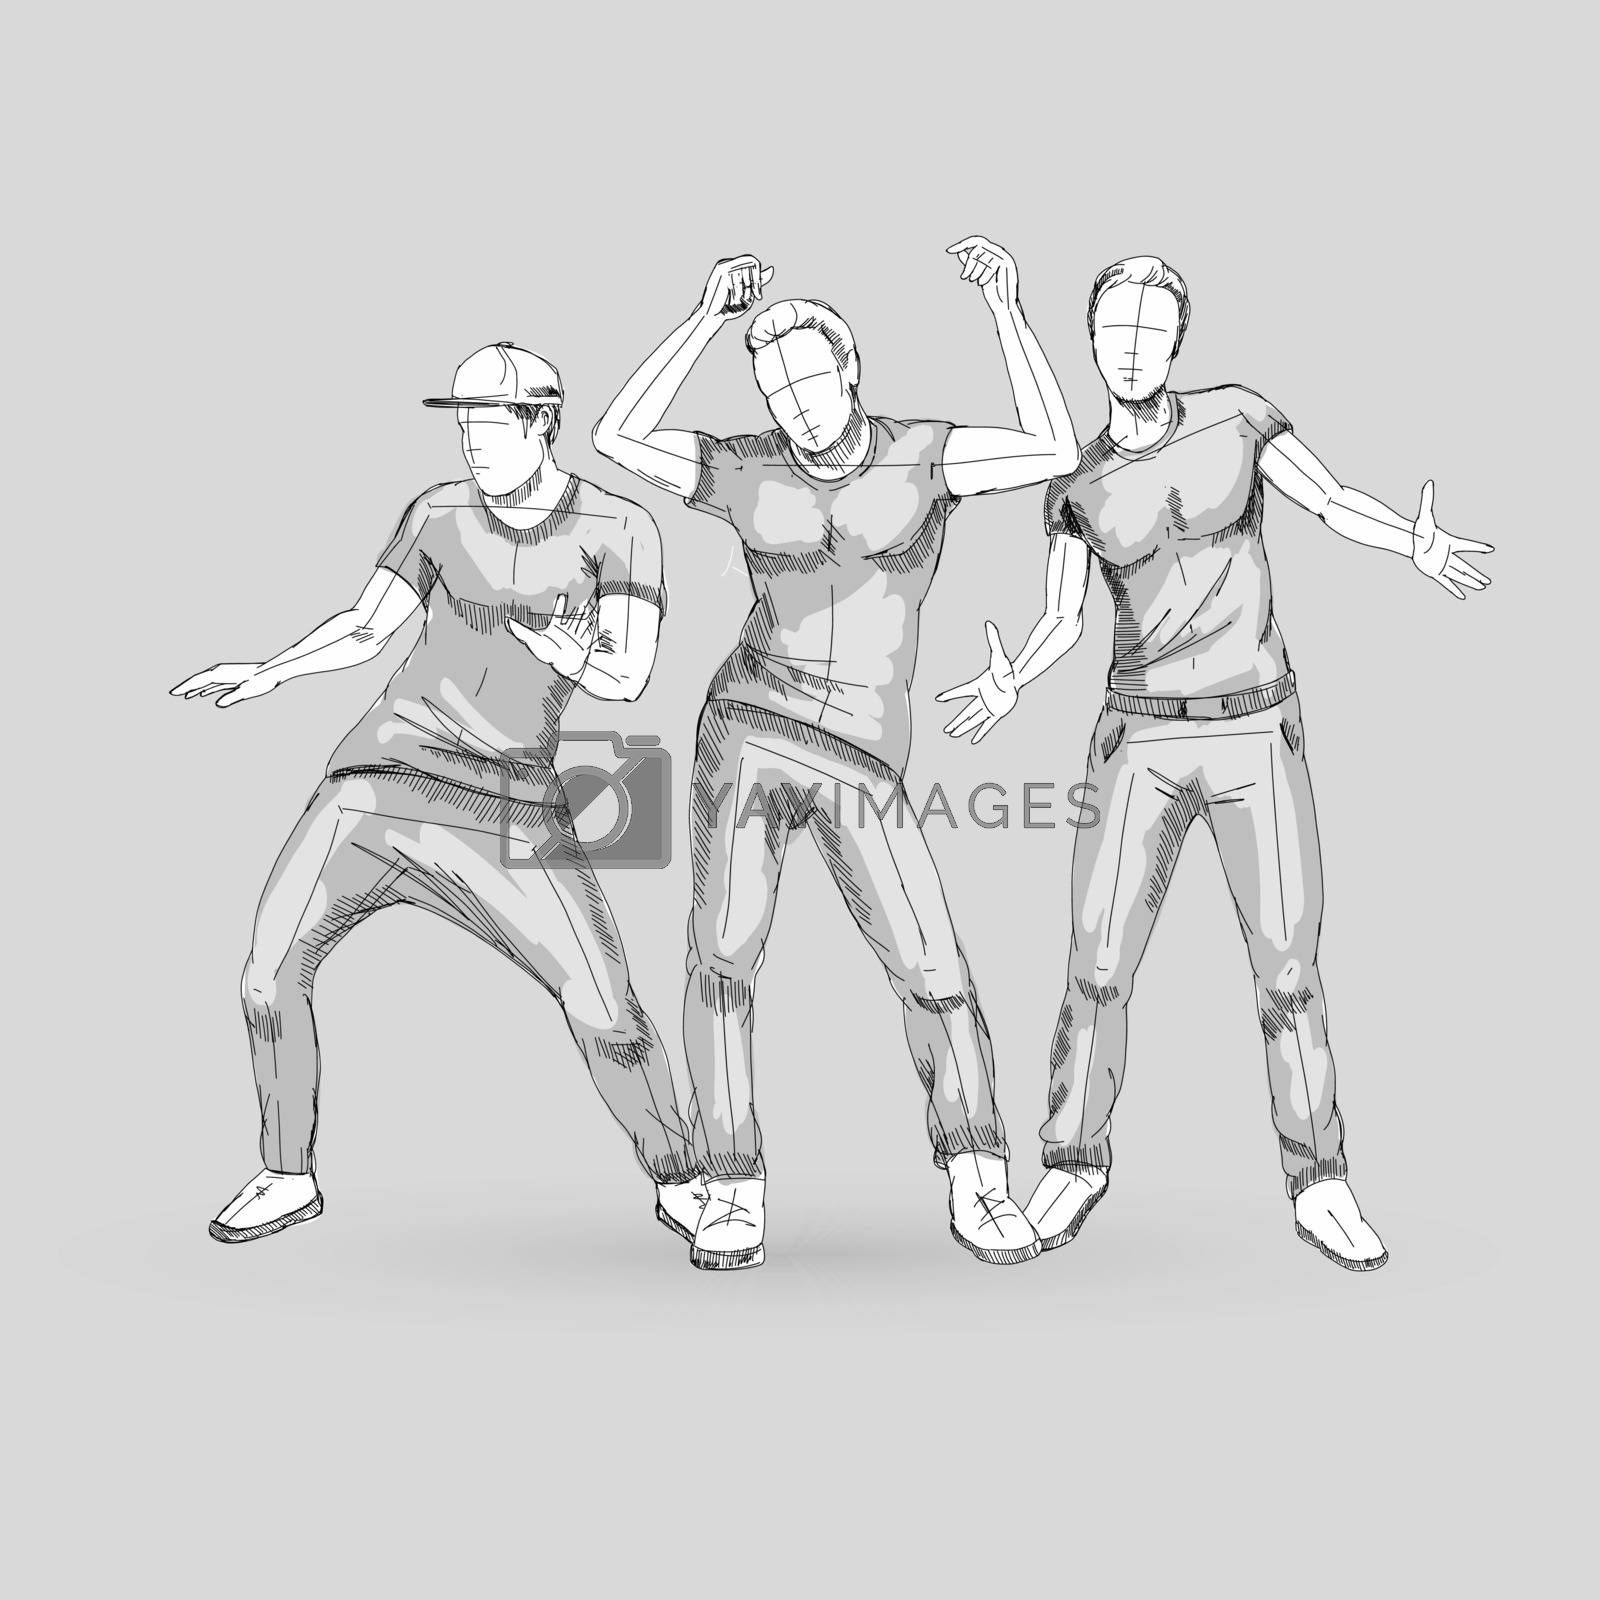 Set of Sketch Dancing Males in Different Poses on the Dance Floor